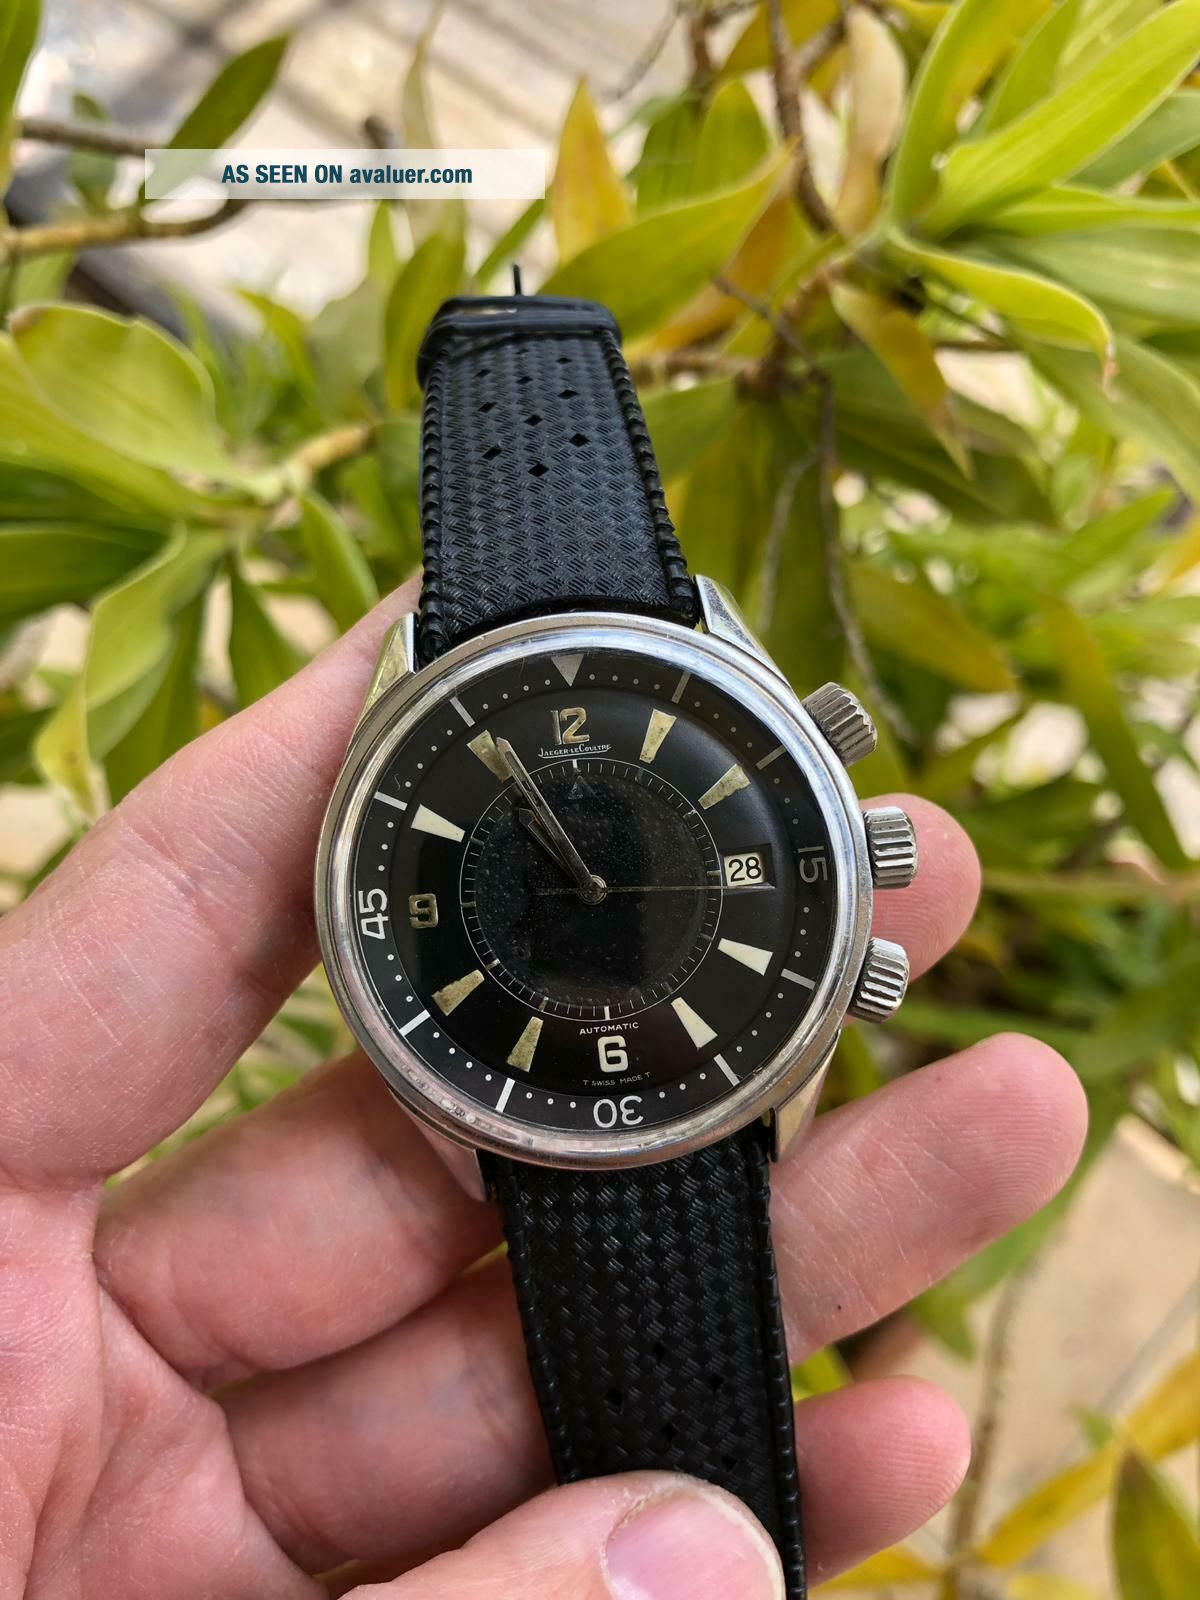 EXTRIMLY RARE 1968 JAEGER LECOULTRE POLARIS E859 MEMOVOX 42MM Men ' s Watch